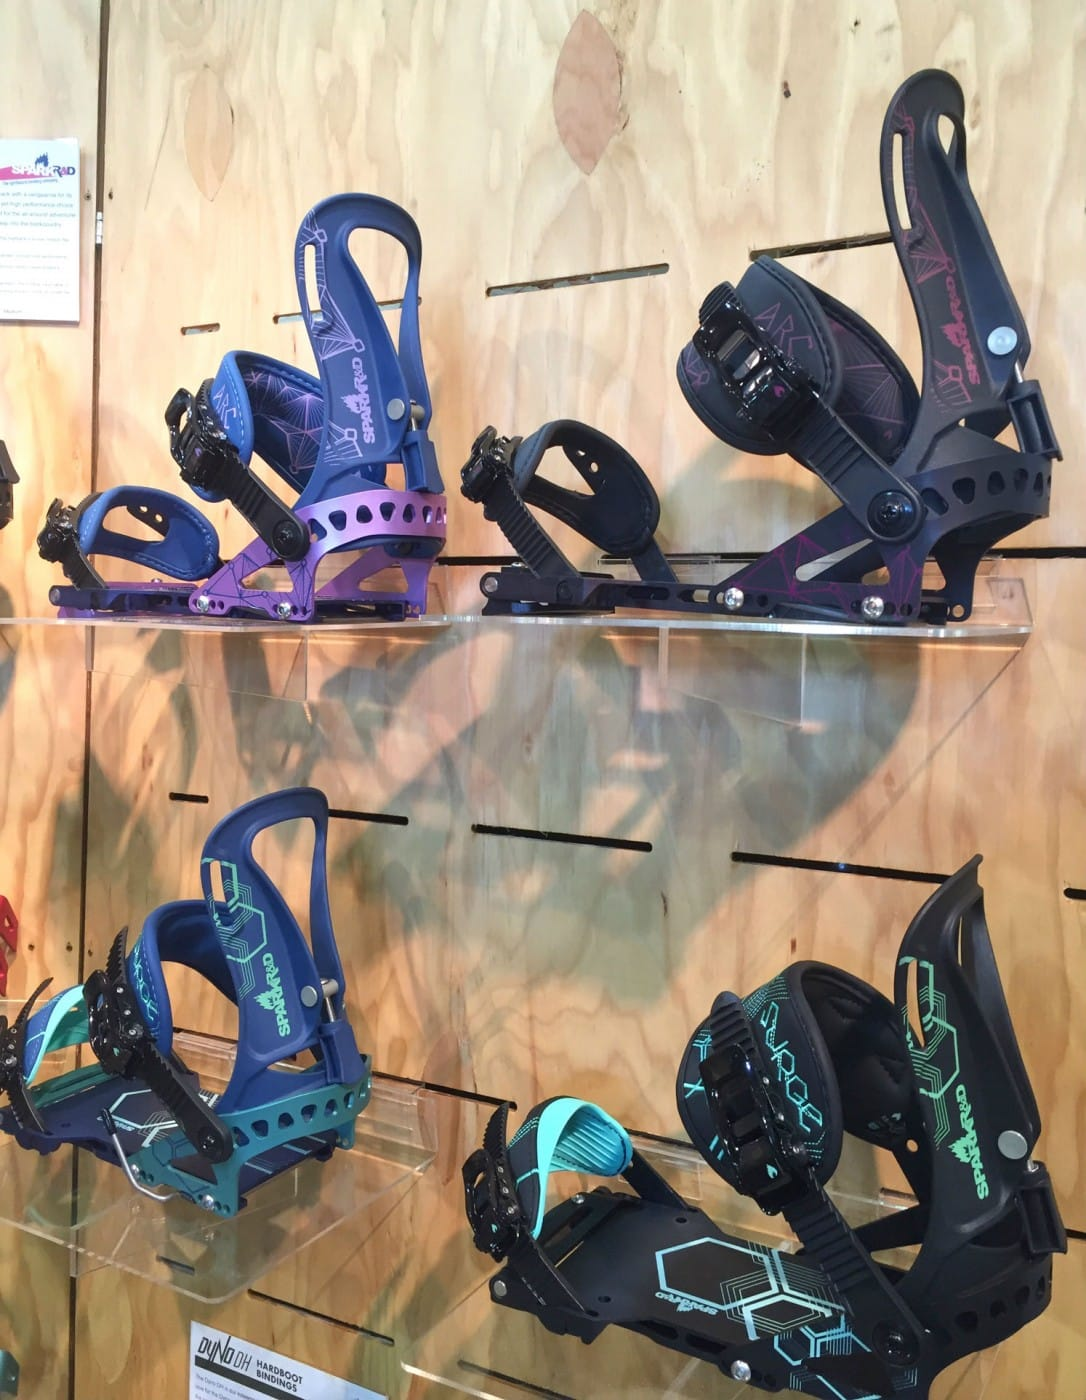 Best Women's Ski & Snowboard Gear 2017 Spark R&D Bindings